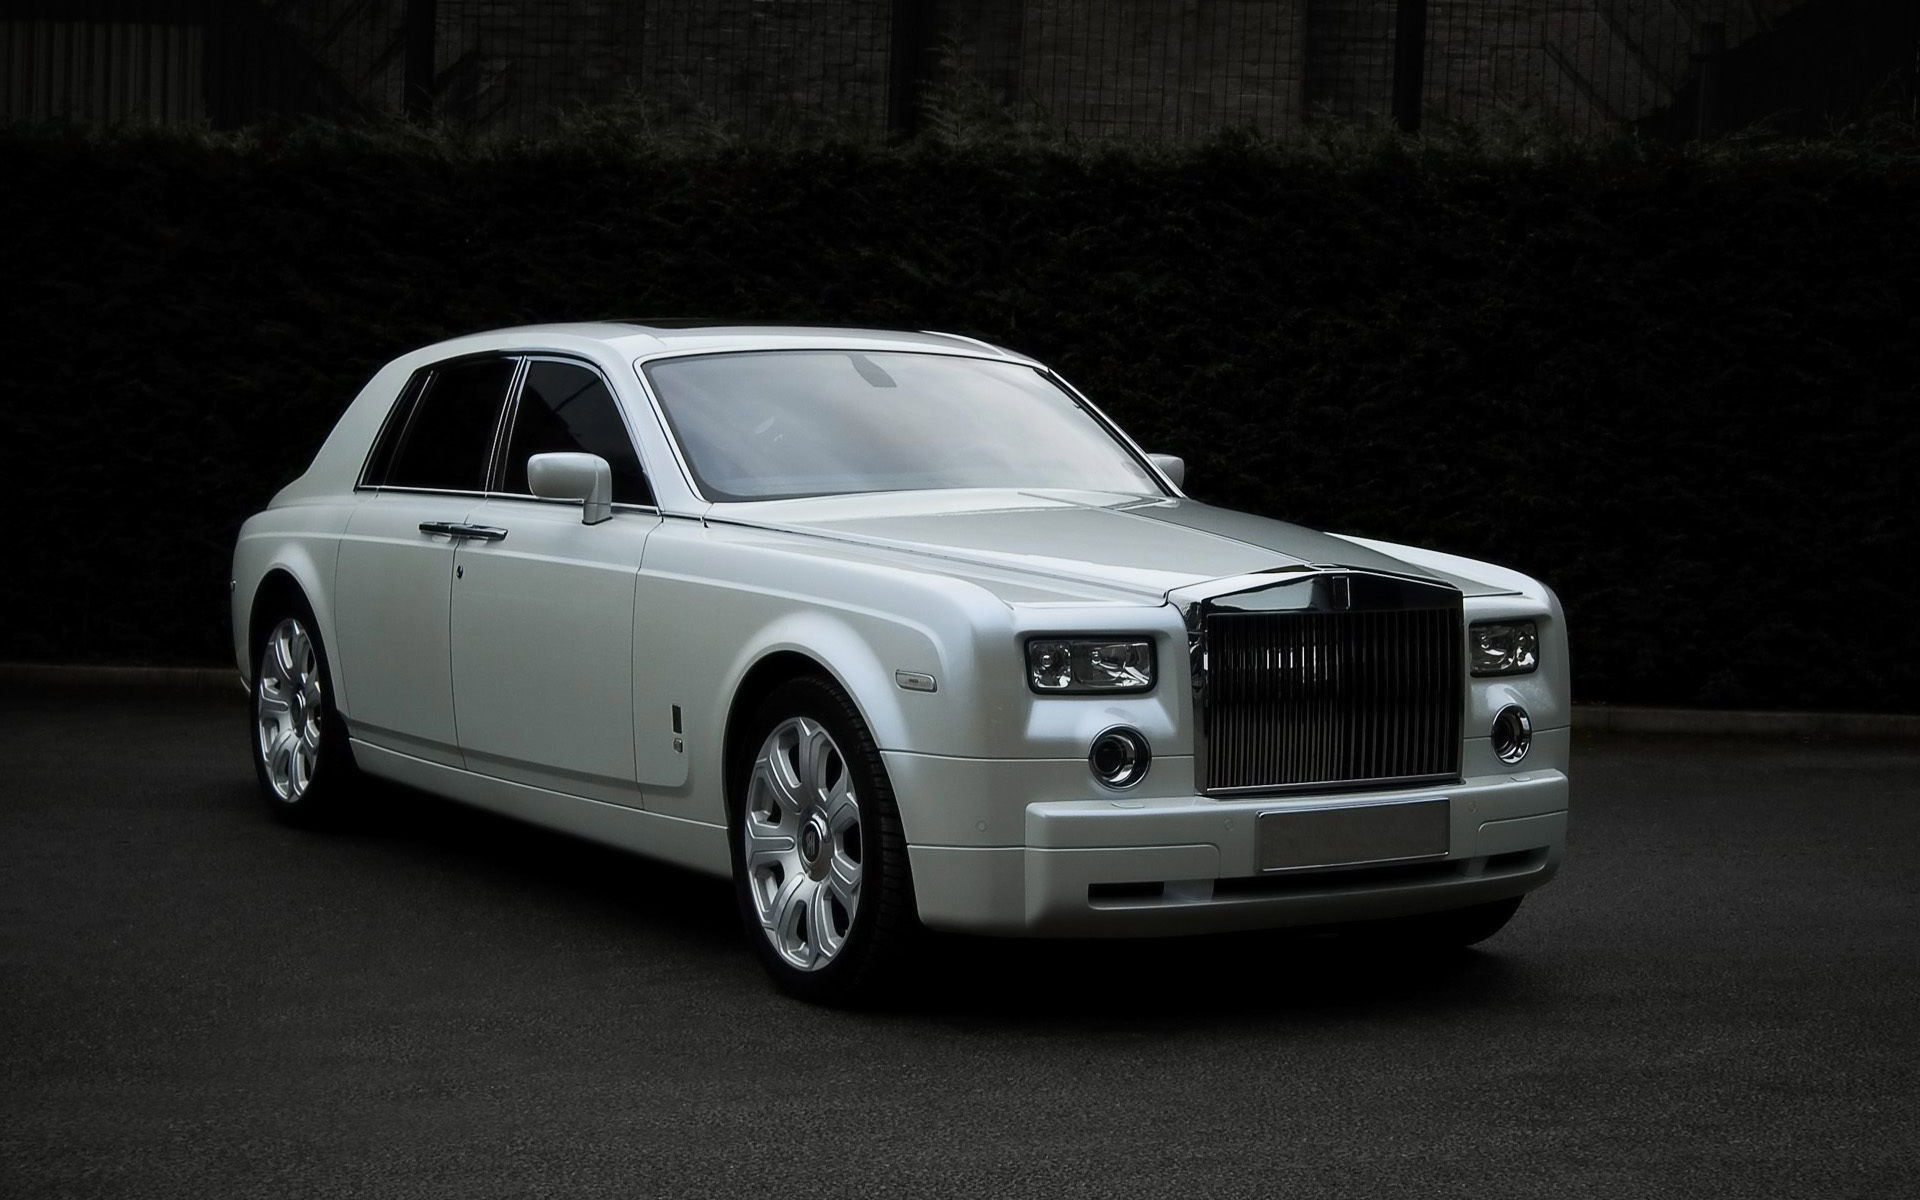 Rolls Royce Phantom Wallpaper 17172